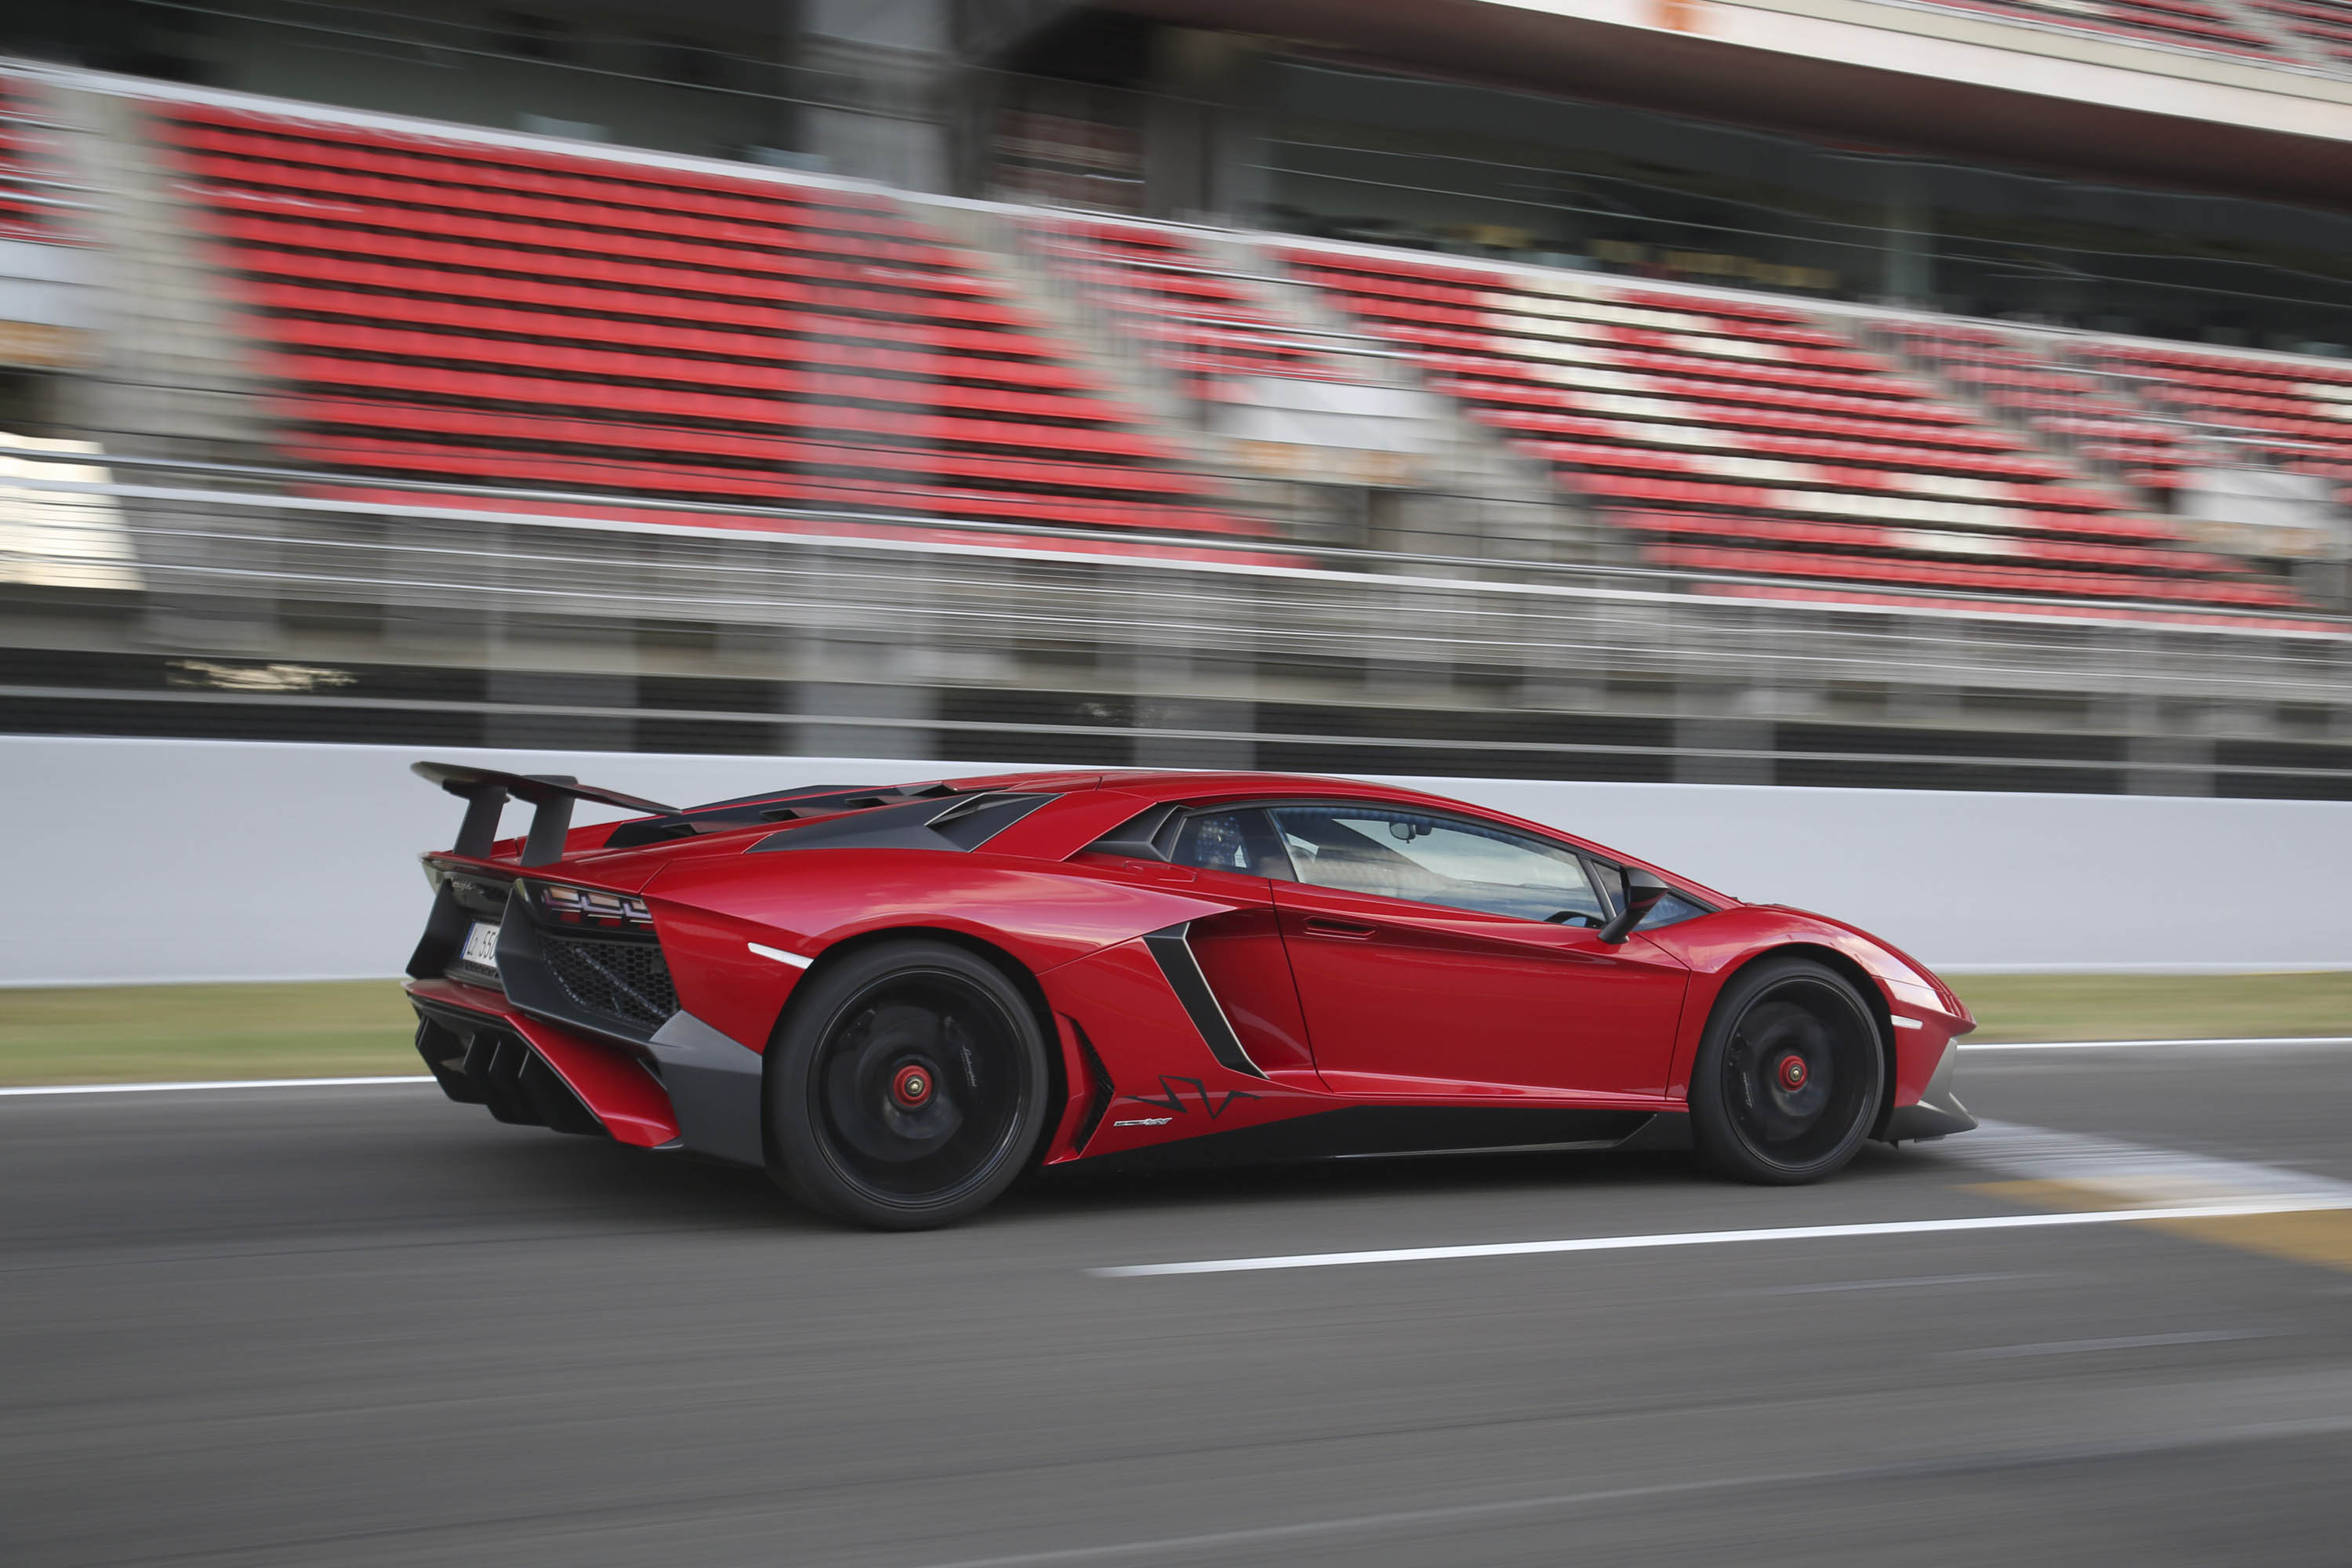 2017 Lamborghini Aventador Review, Ratings, Specs, Prices, And Photos   The  Car Connection